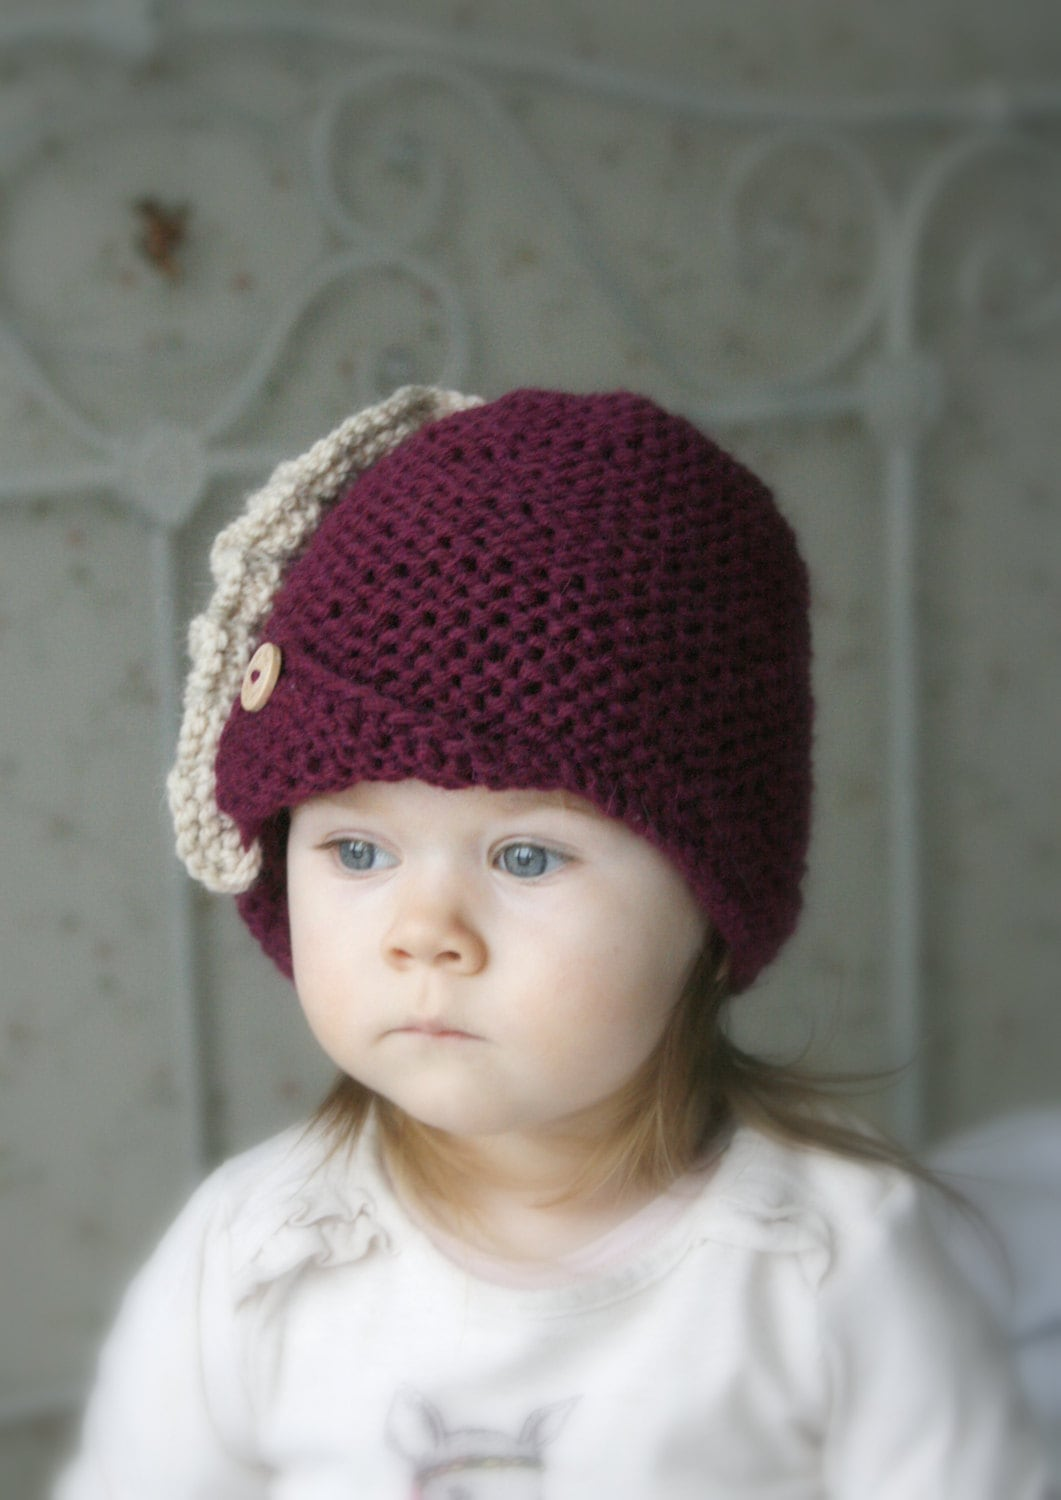 Downton Abbey Knitting Patterns : KNITTING PATTERN Downton Abbey cloche Andra with a ruffles and buttons (baby,...